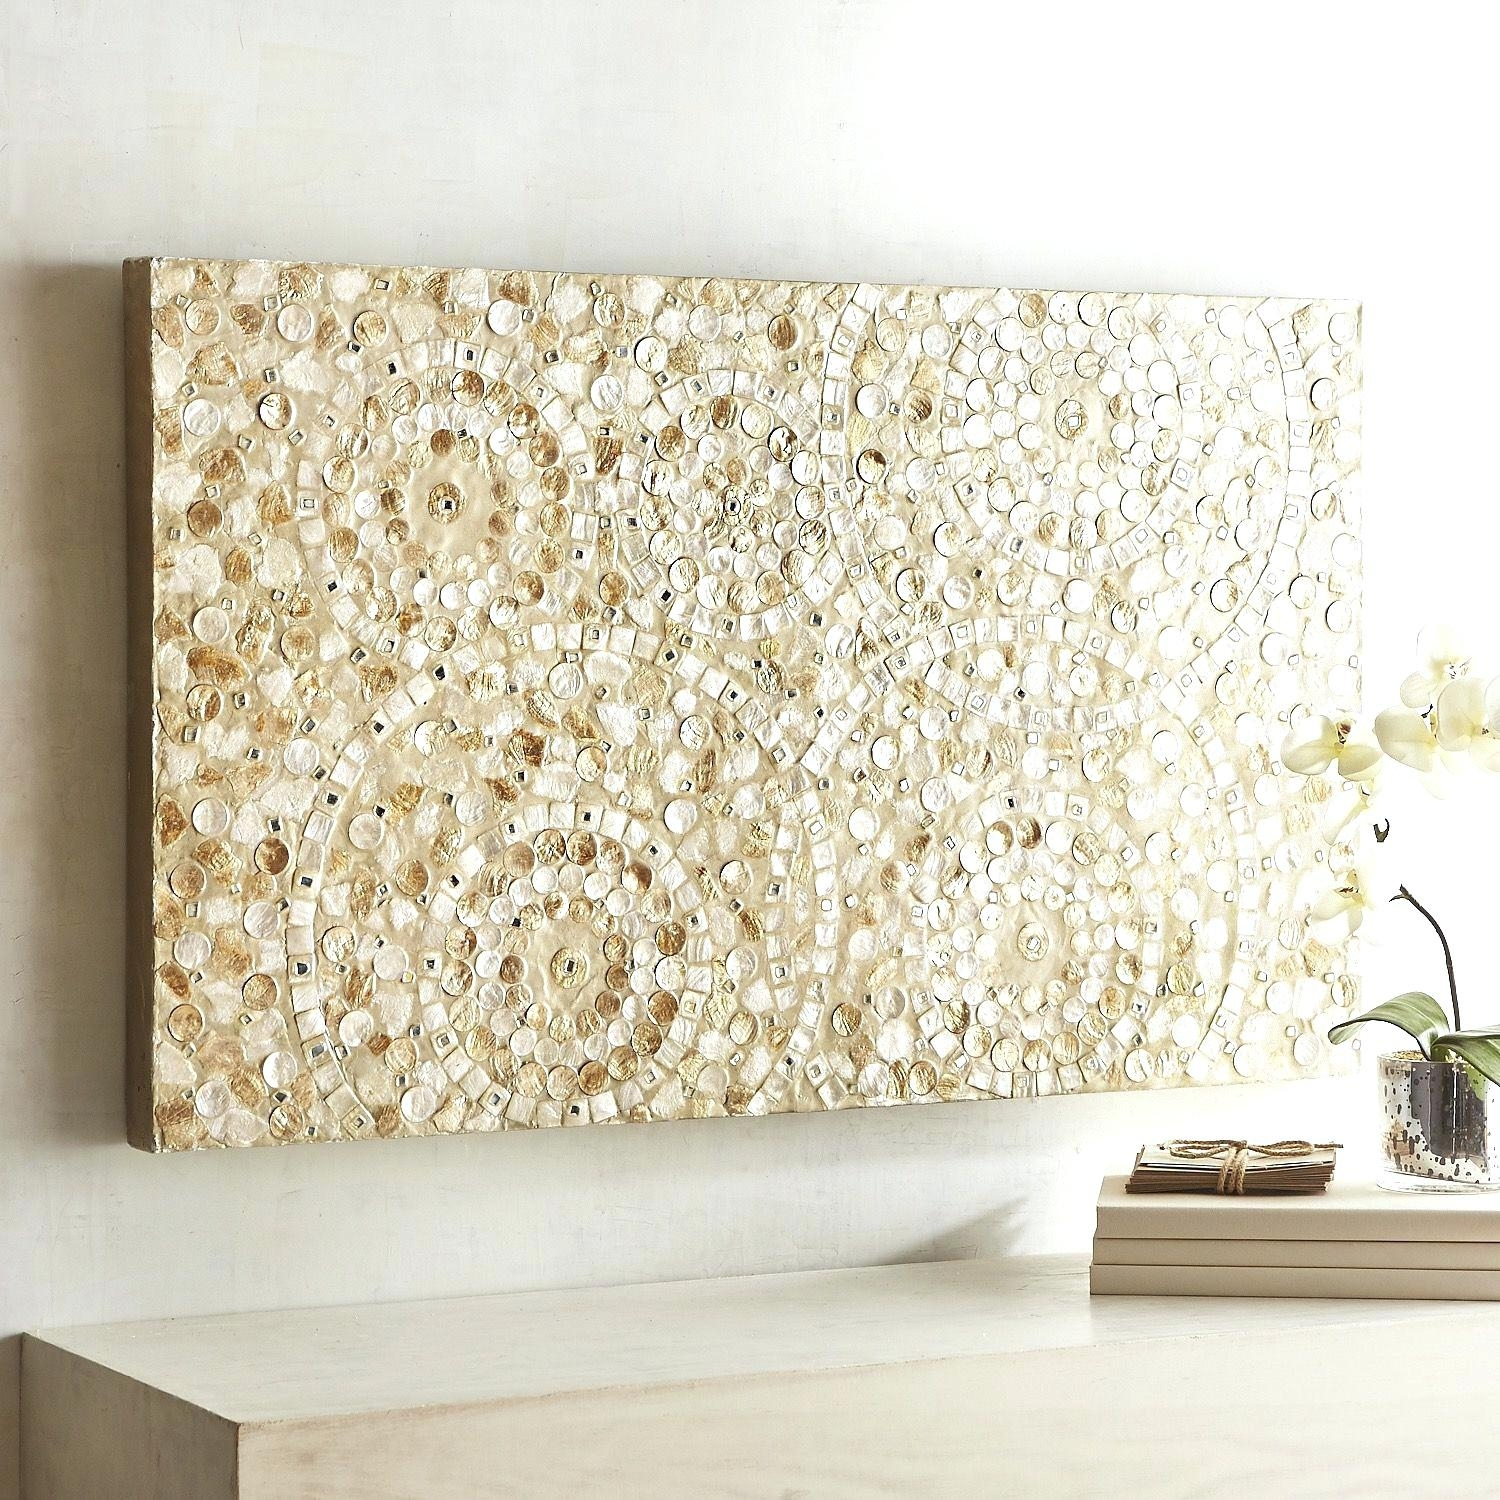 Enjoyable Design Ideas Capiz Wall Art Com Shell Fish Bowl Flower In West Elm Wall Art (View 14 of 20)